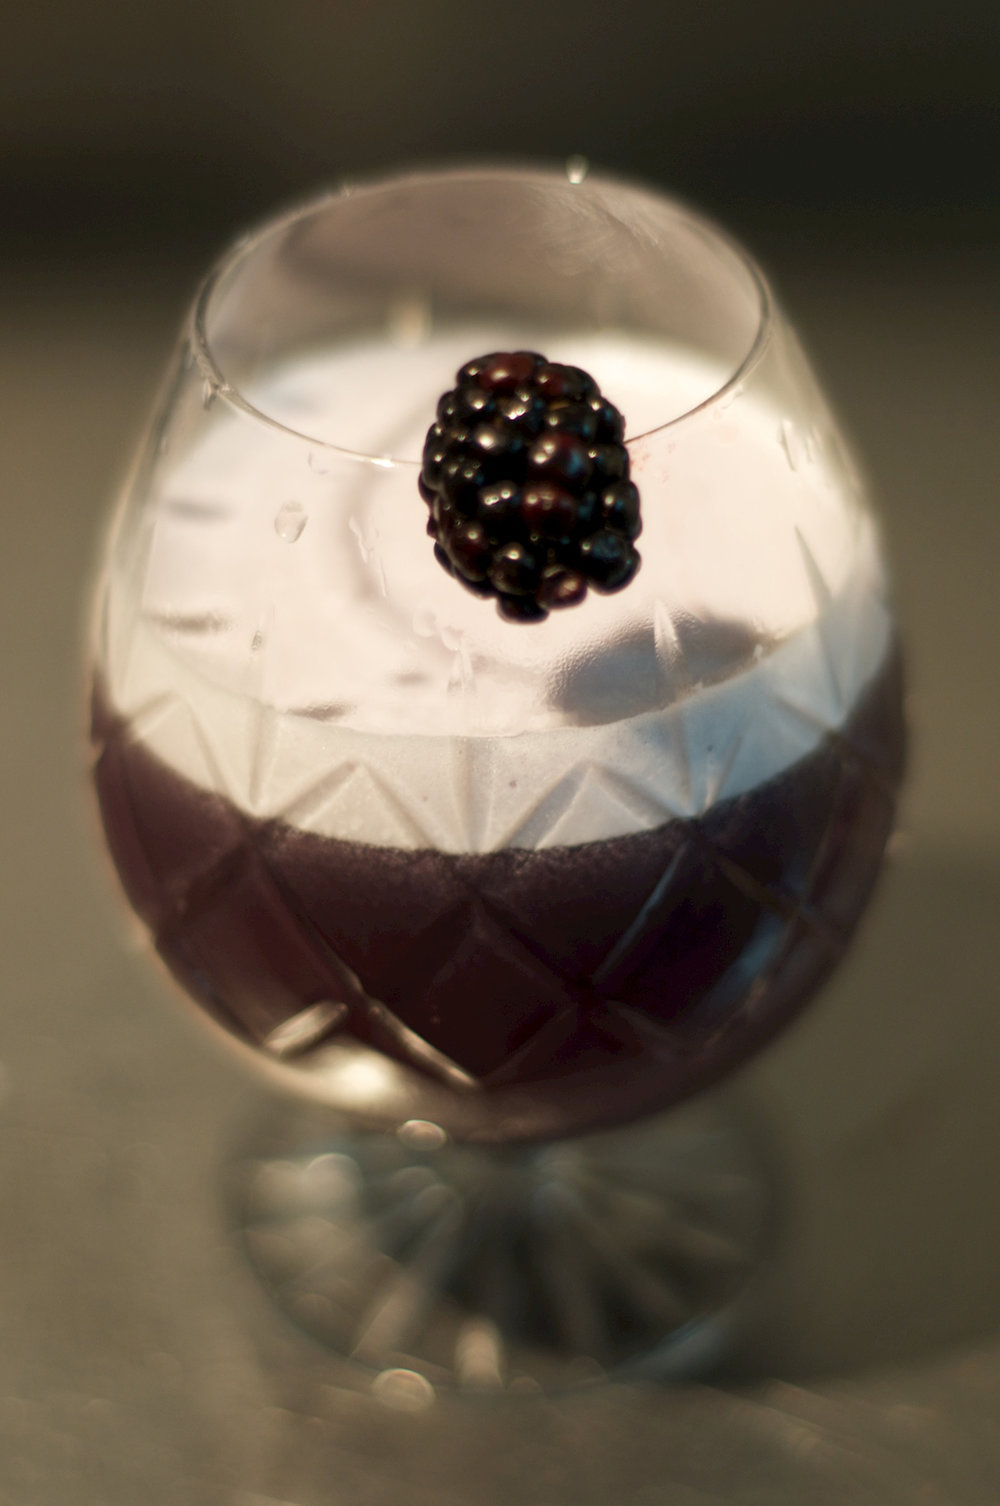 Lucyfer - Muddle half a handful of blackberries and the tip of a red chili.Add 30ml of vanilla-infused bourbon*, 15ml Chambord, 15ml Blue Curaçao, 25ml apple juice and 20ml egg white.Shake over ice and pour. Garnish with a blackberry.*A bottle of bourbon infused with one vanilla pod